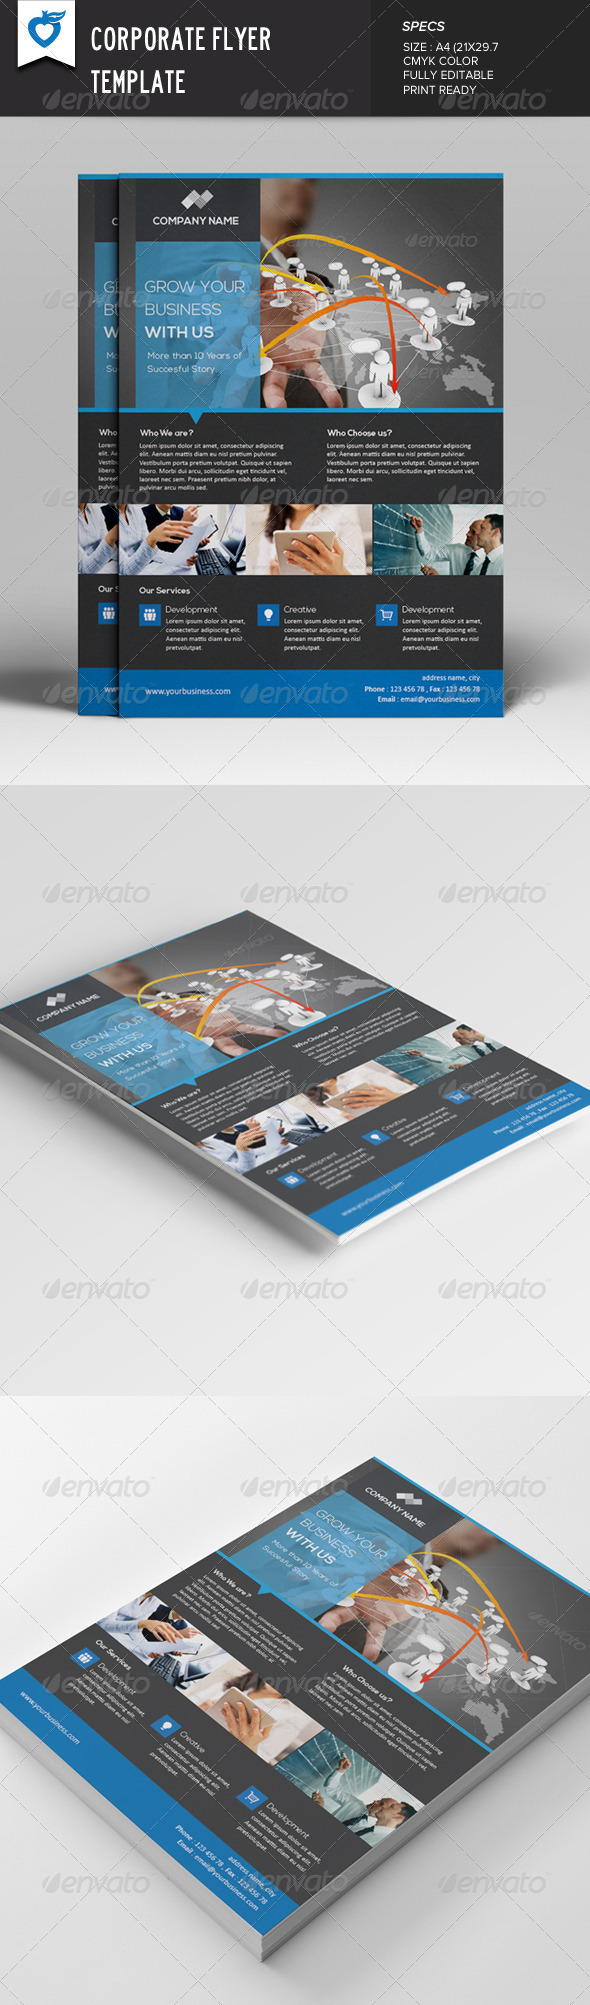 GraphicRiver Corporate Flyer Template v2 7712781